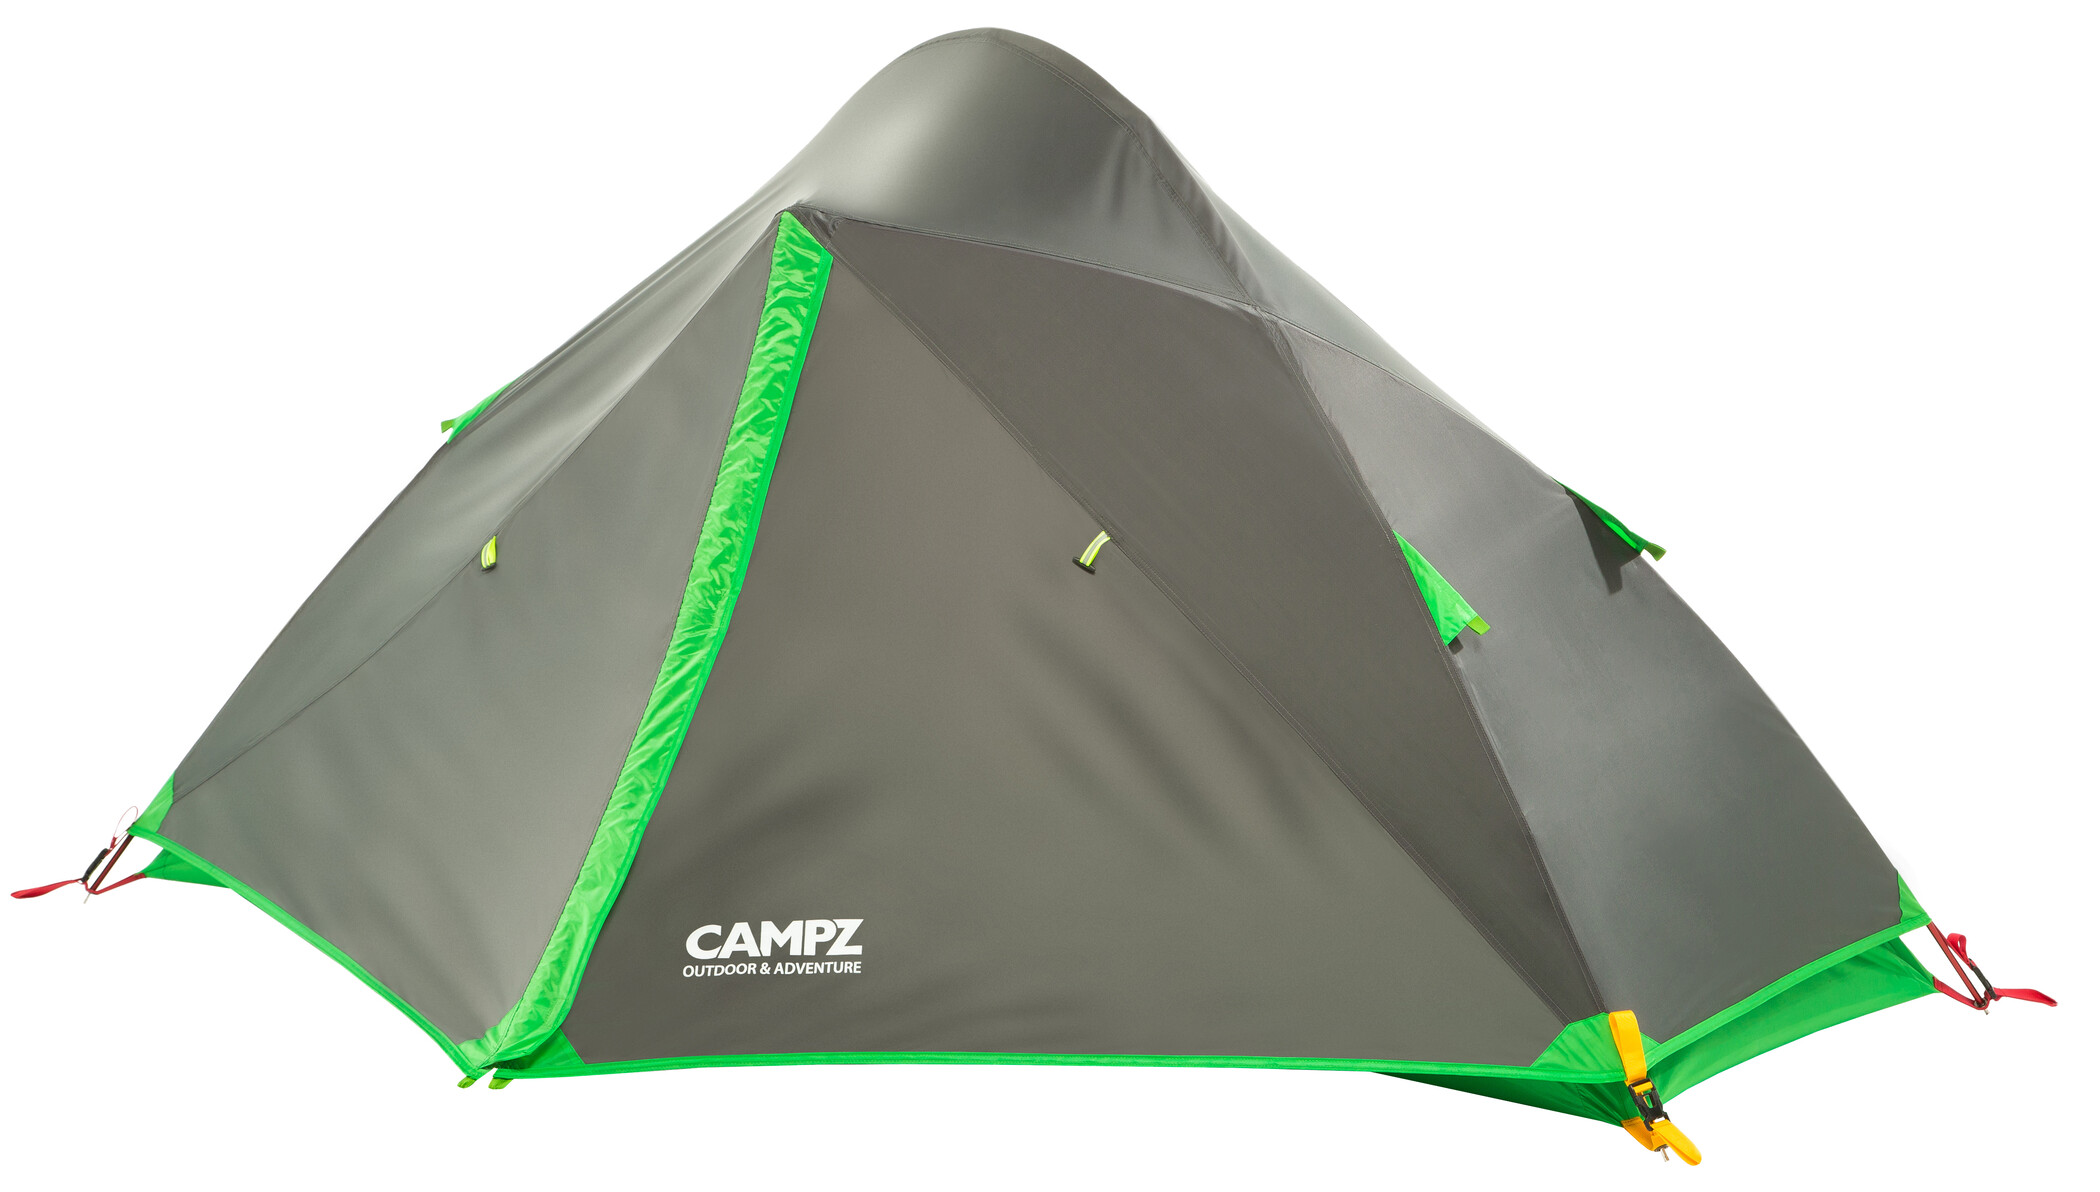 CAMPZ Tignes 1P Telt, deep grey/green (2019) | Misc. Transportation and Storage